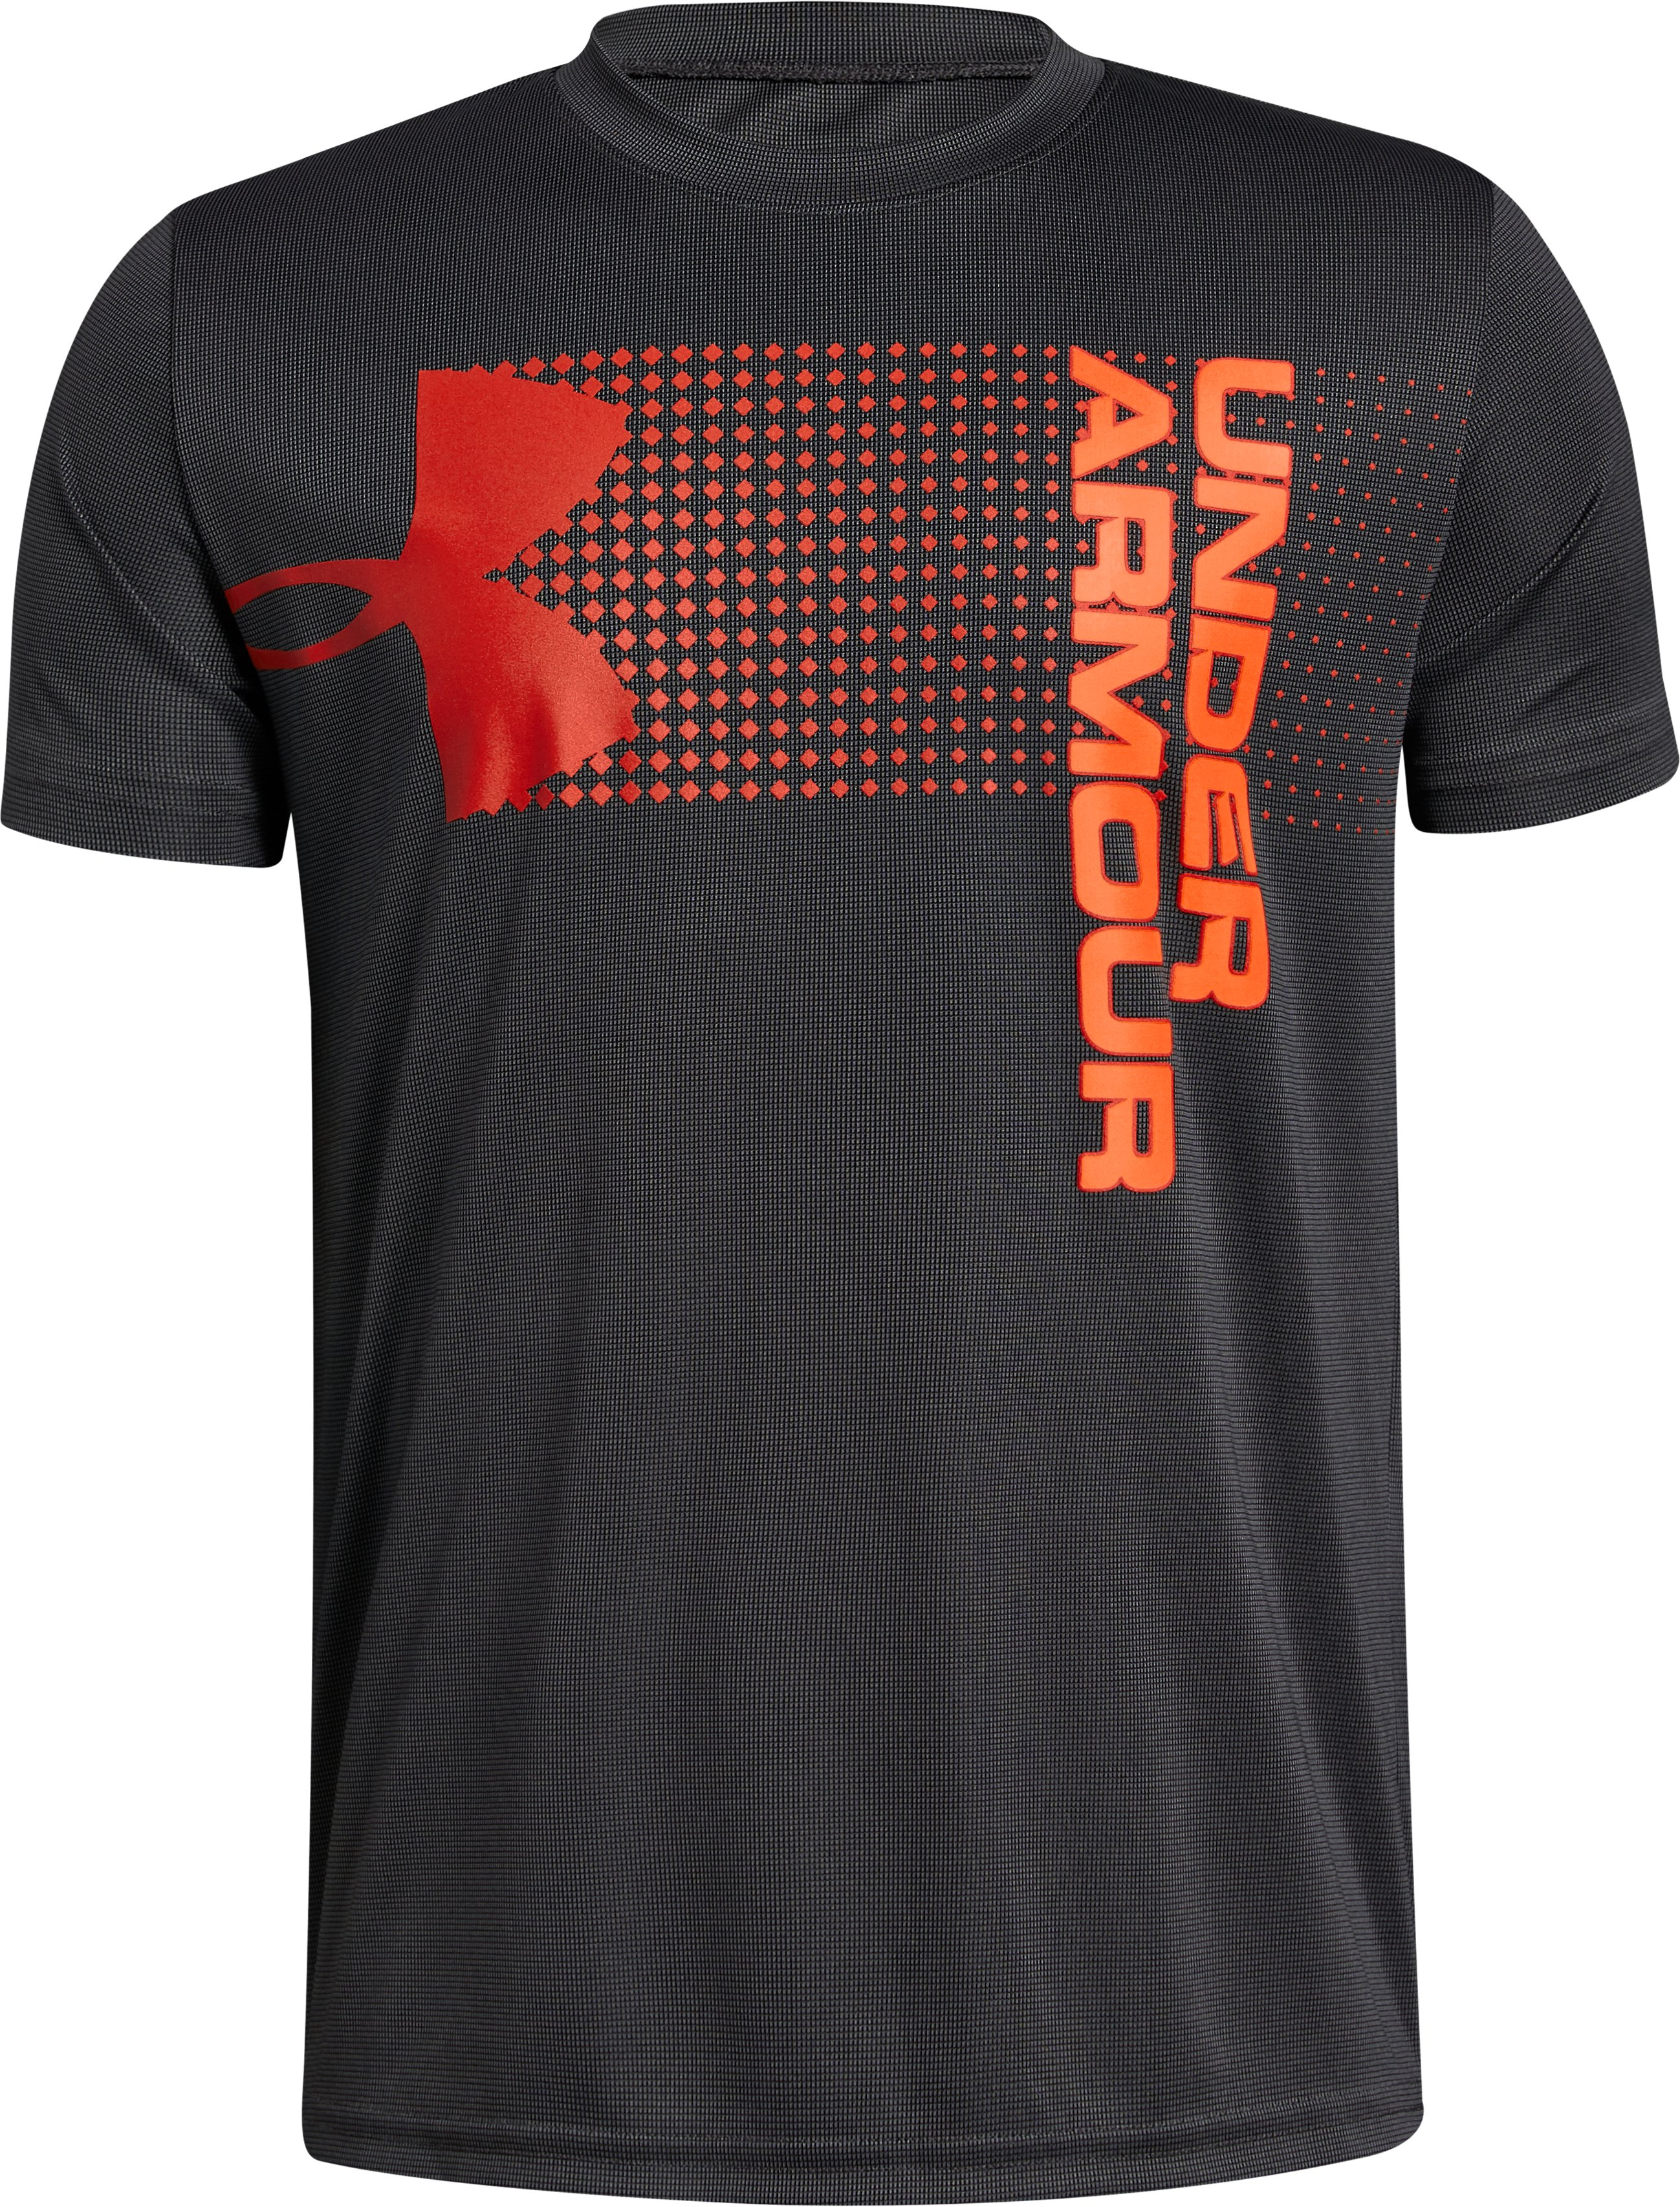 Boys' UA Crossfade T-Shirt 7 Colors $20.00